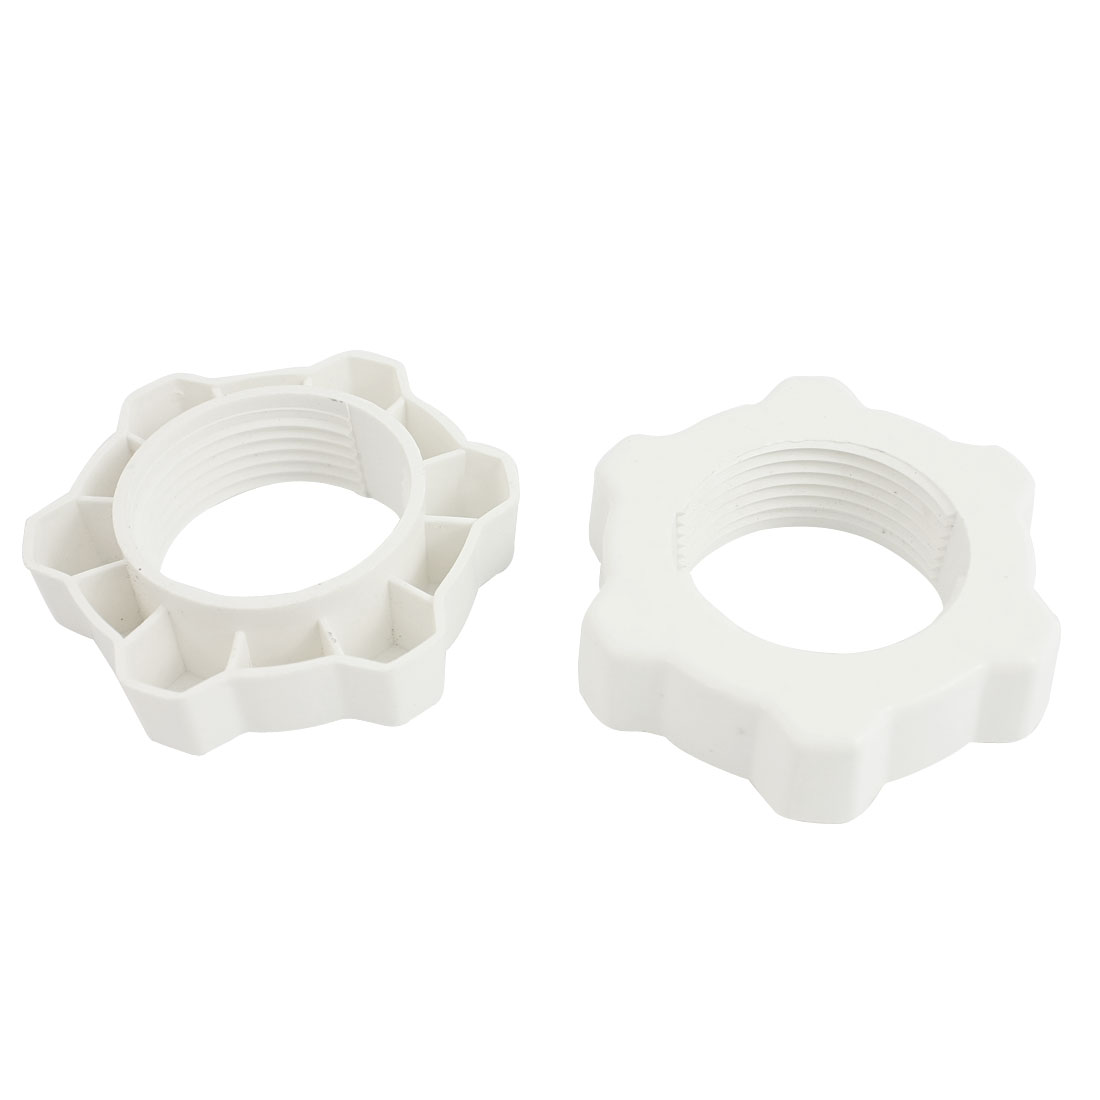 White Plastic 33mm Thread Diameter Fan Guard Fastener Screw Nuts 2 Pieces